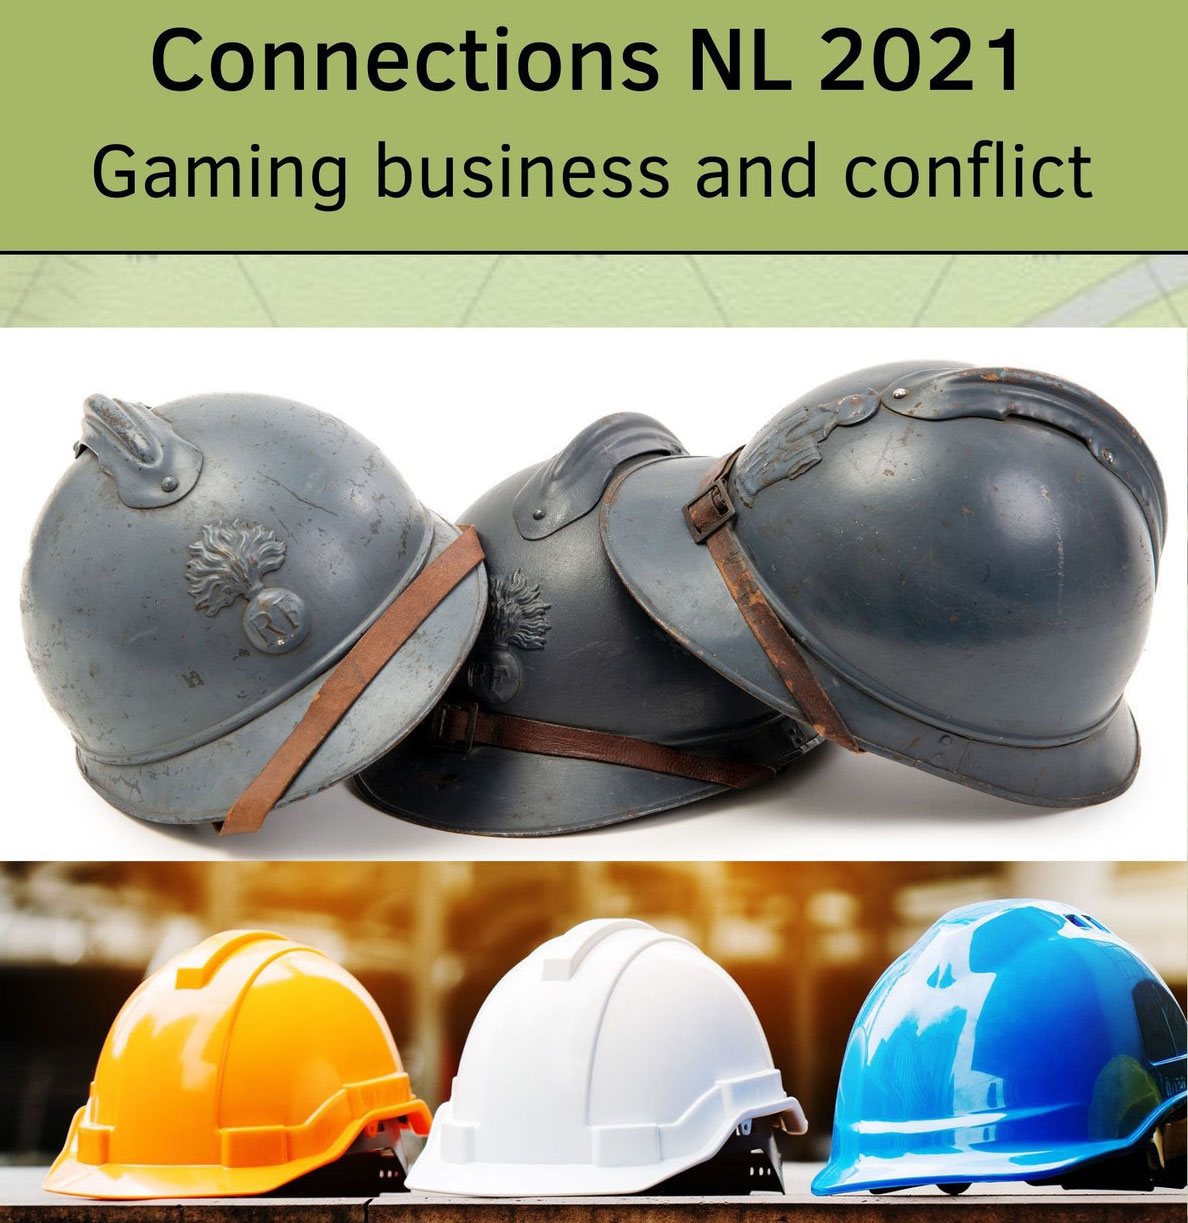 CONNECTIONS 2021 NL: Gaming Business and Conflict